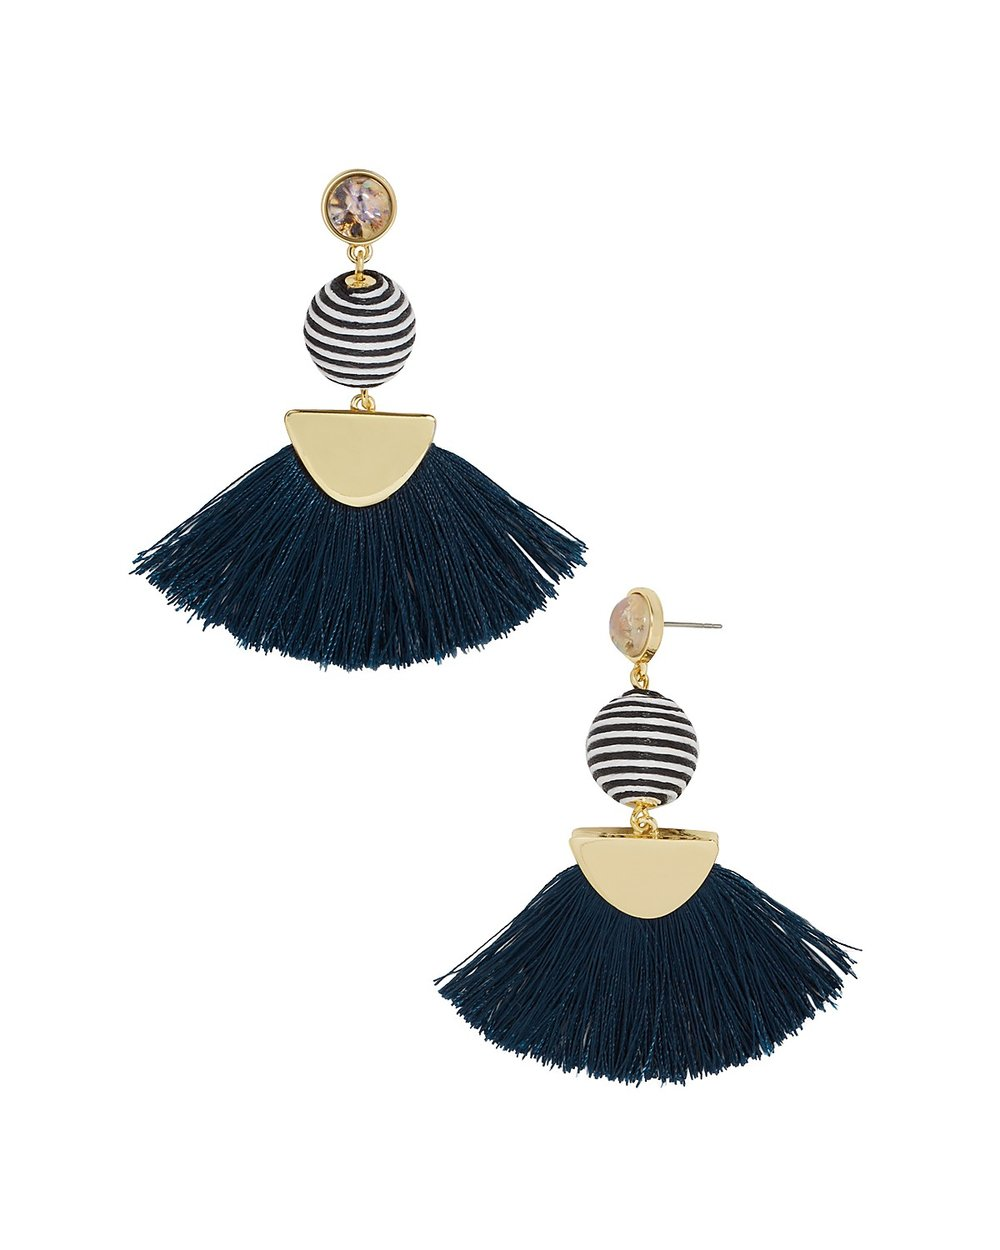 bloomingdales-navybluebaublebarmambadropearrings.jpg